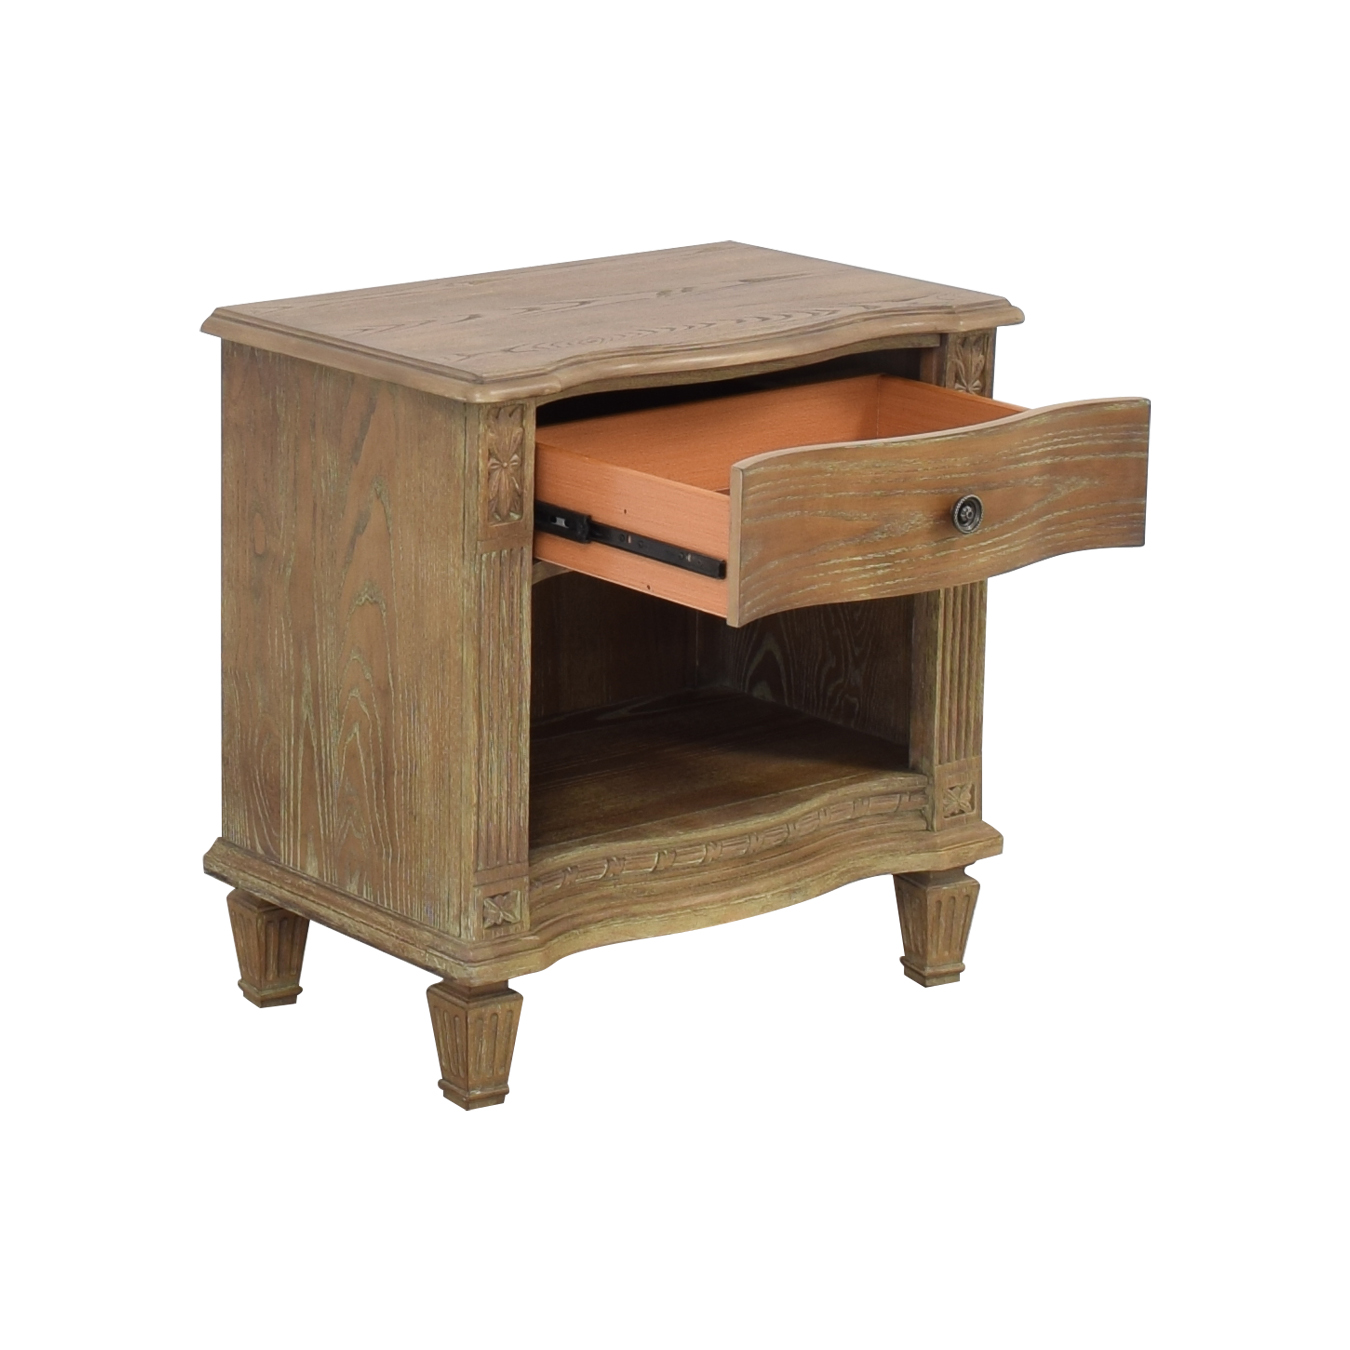 Raymour & Flanigan Rustic Single Drawer End Table / Tables